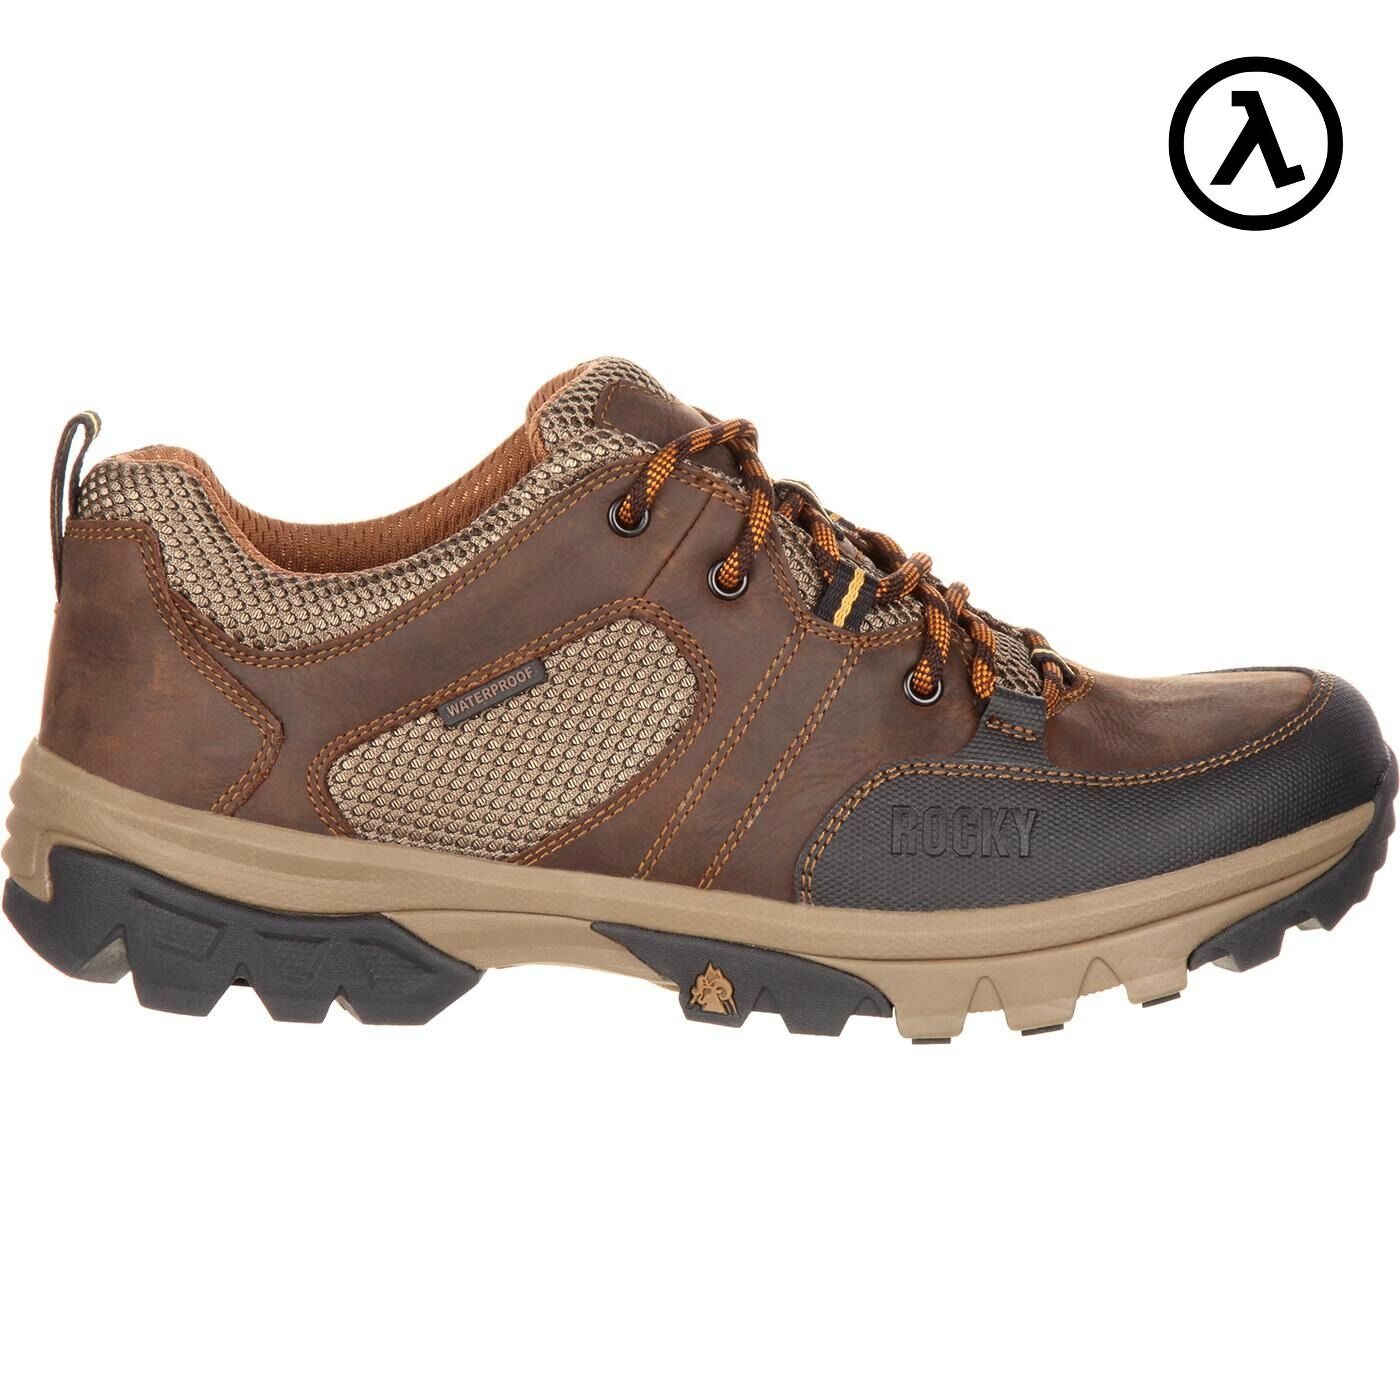 ROCKY ENDEAVOR POINT WATERPROOF OUTDOOR OXFORDS RKS0296  ALL SIZES - NEW